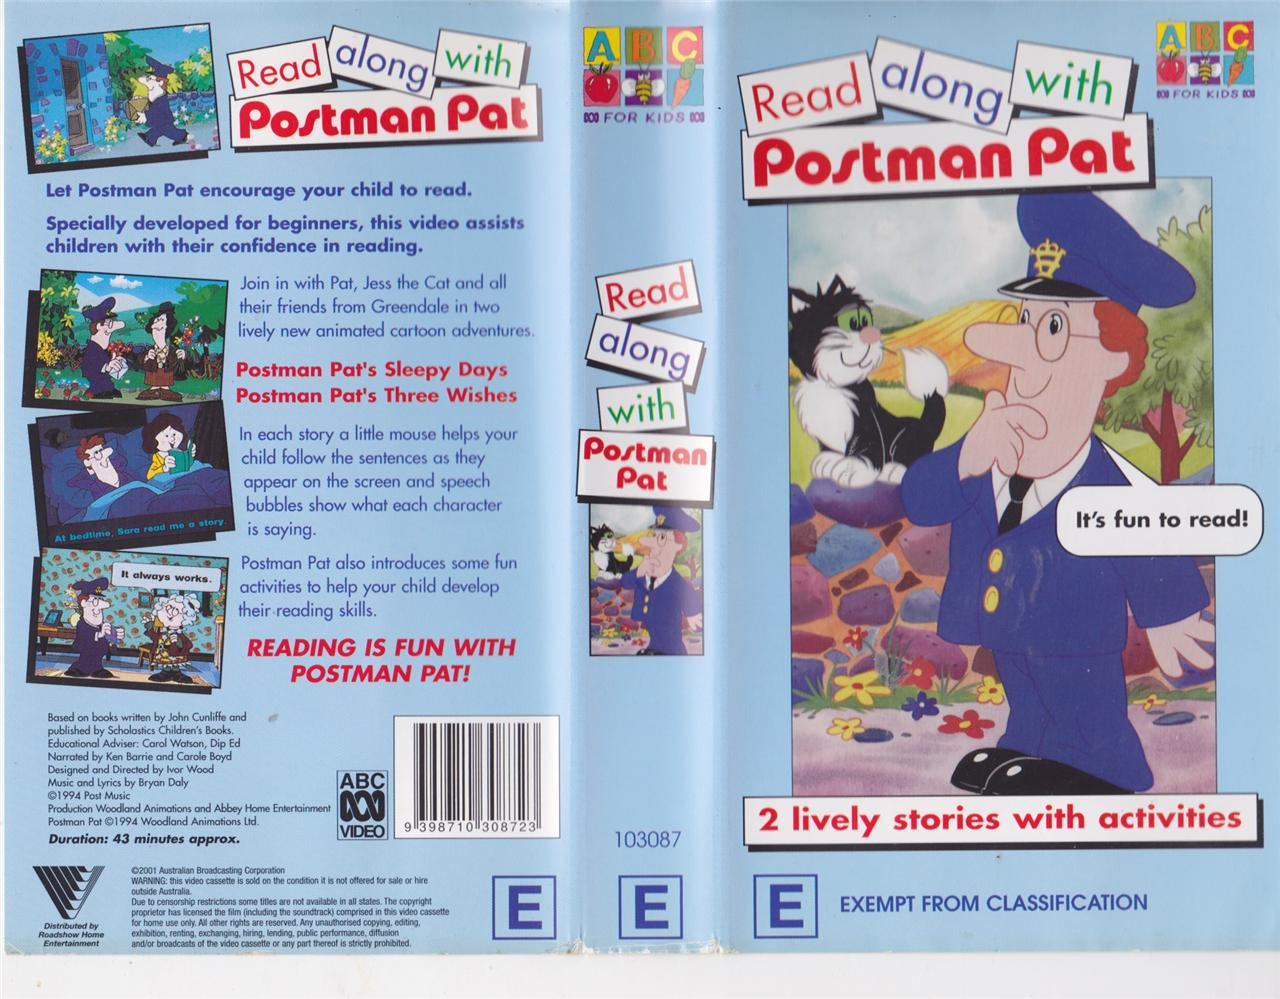 Details about POSTMAN PAT READ ALONG WITH POSTMAN PAT VHS PAL VIDEO